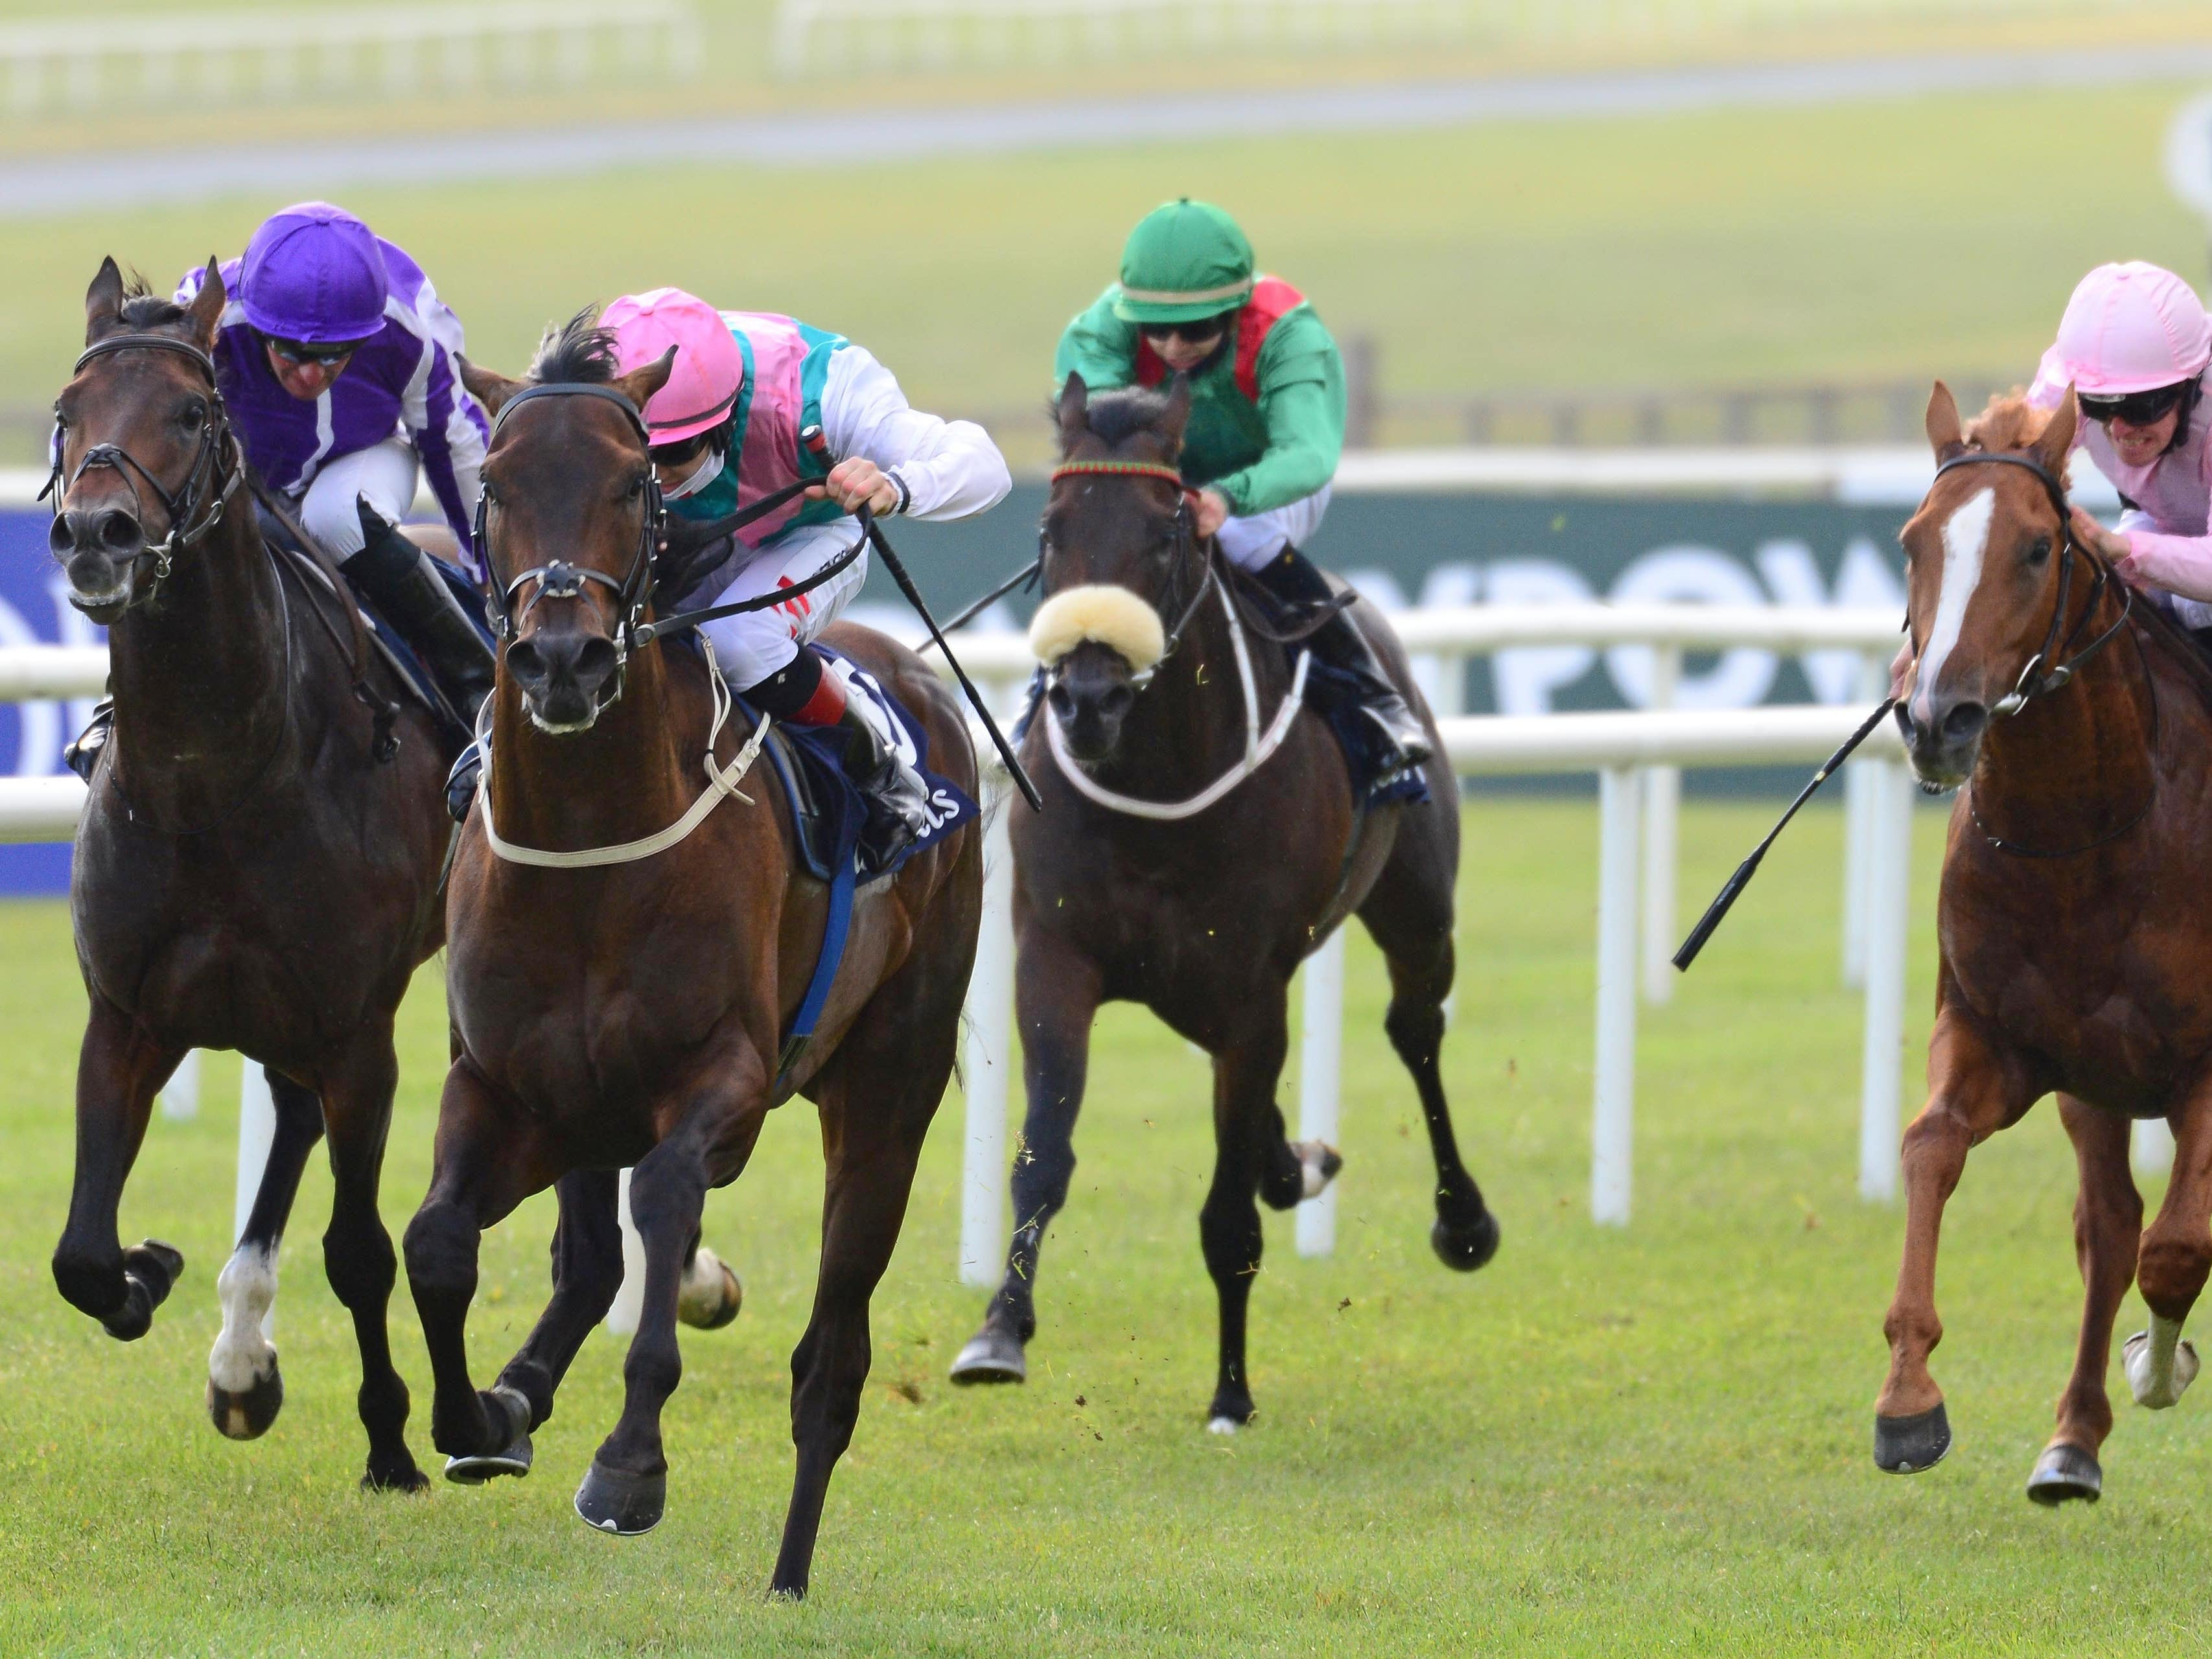 Siskin ridden by Colin Keane (second left) wins the Tattersalls Irish 2000 Guineas at Curragh Racecourse.